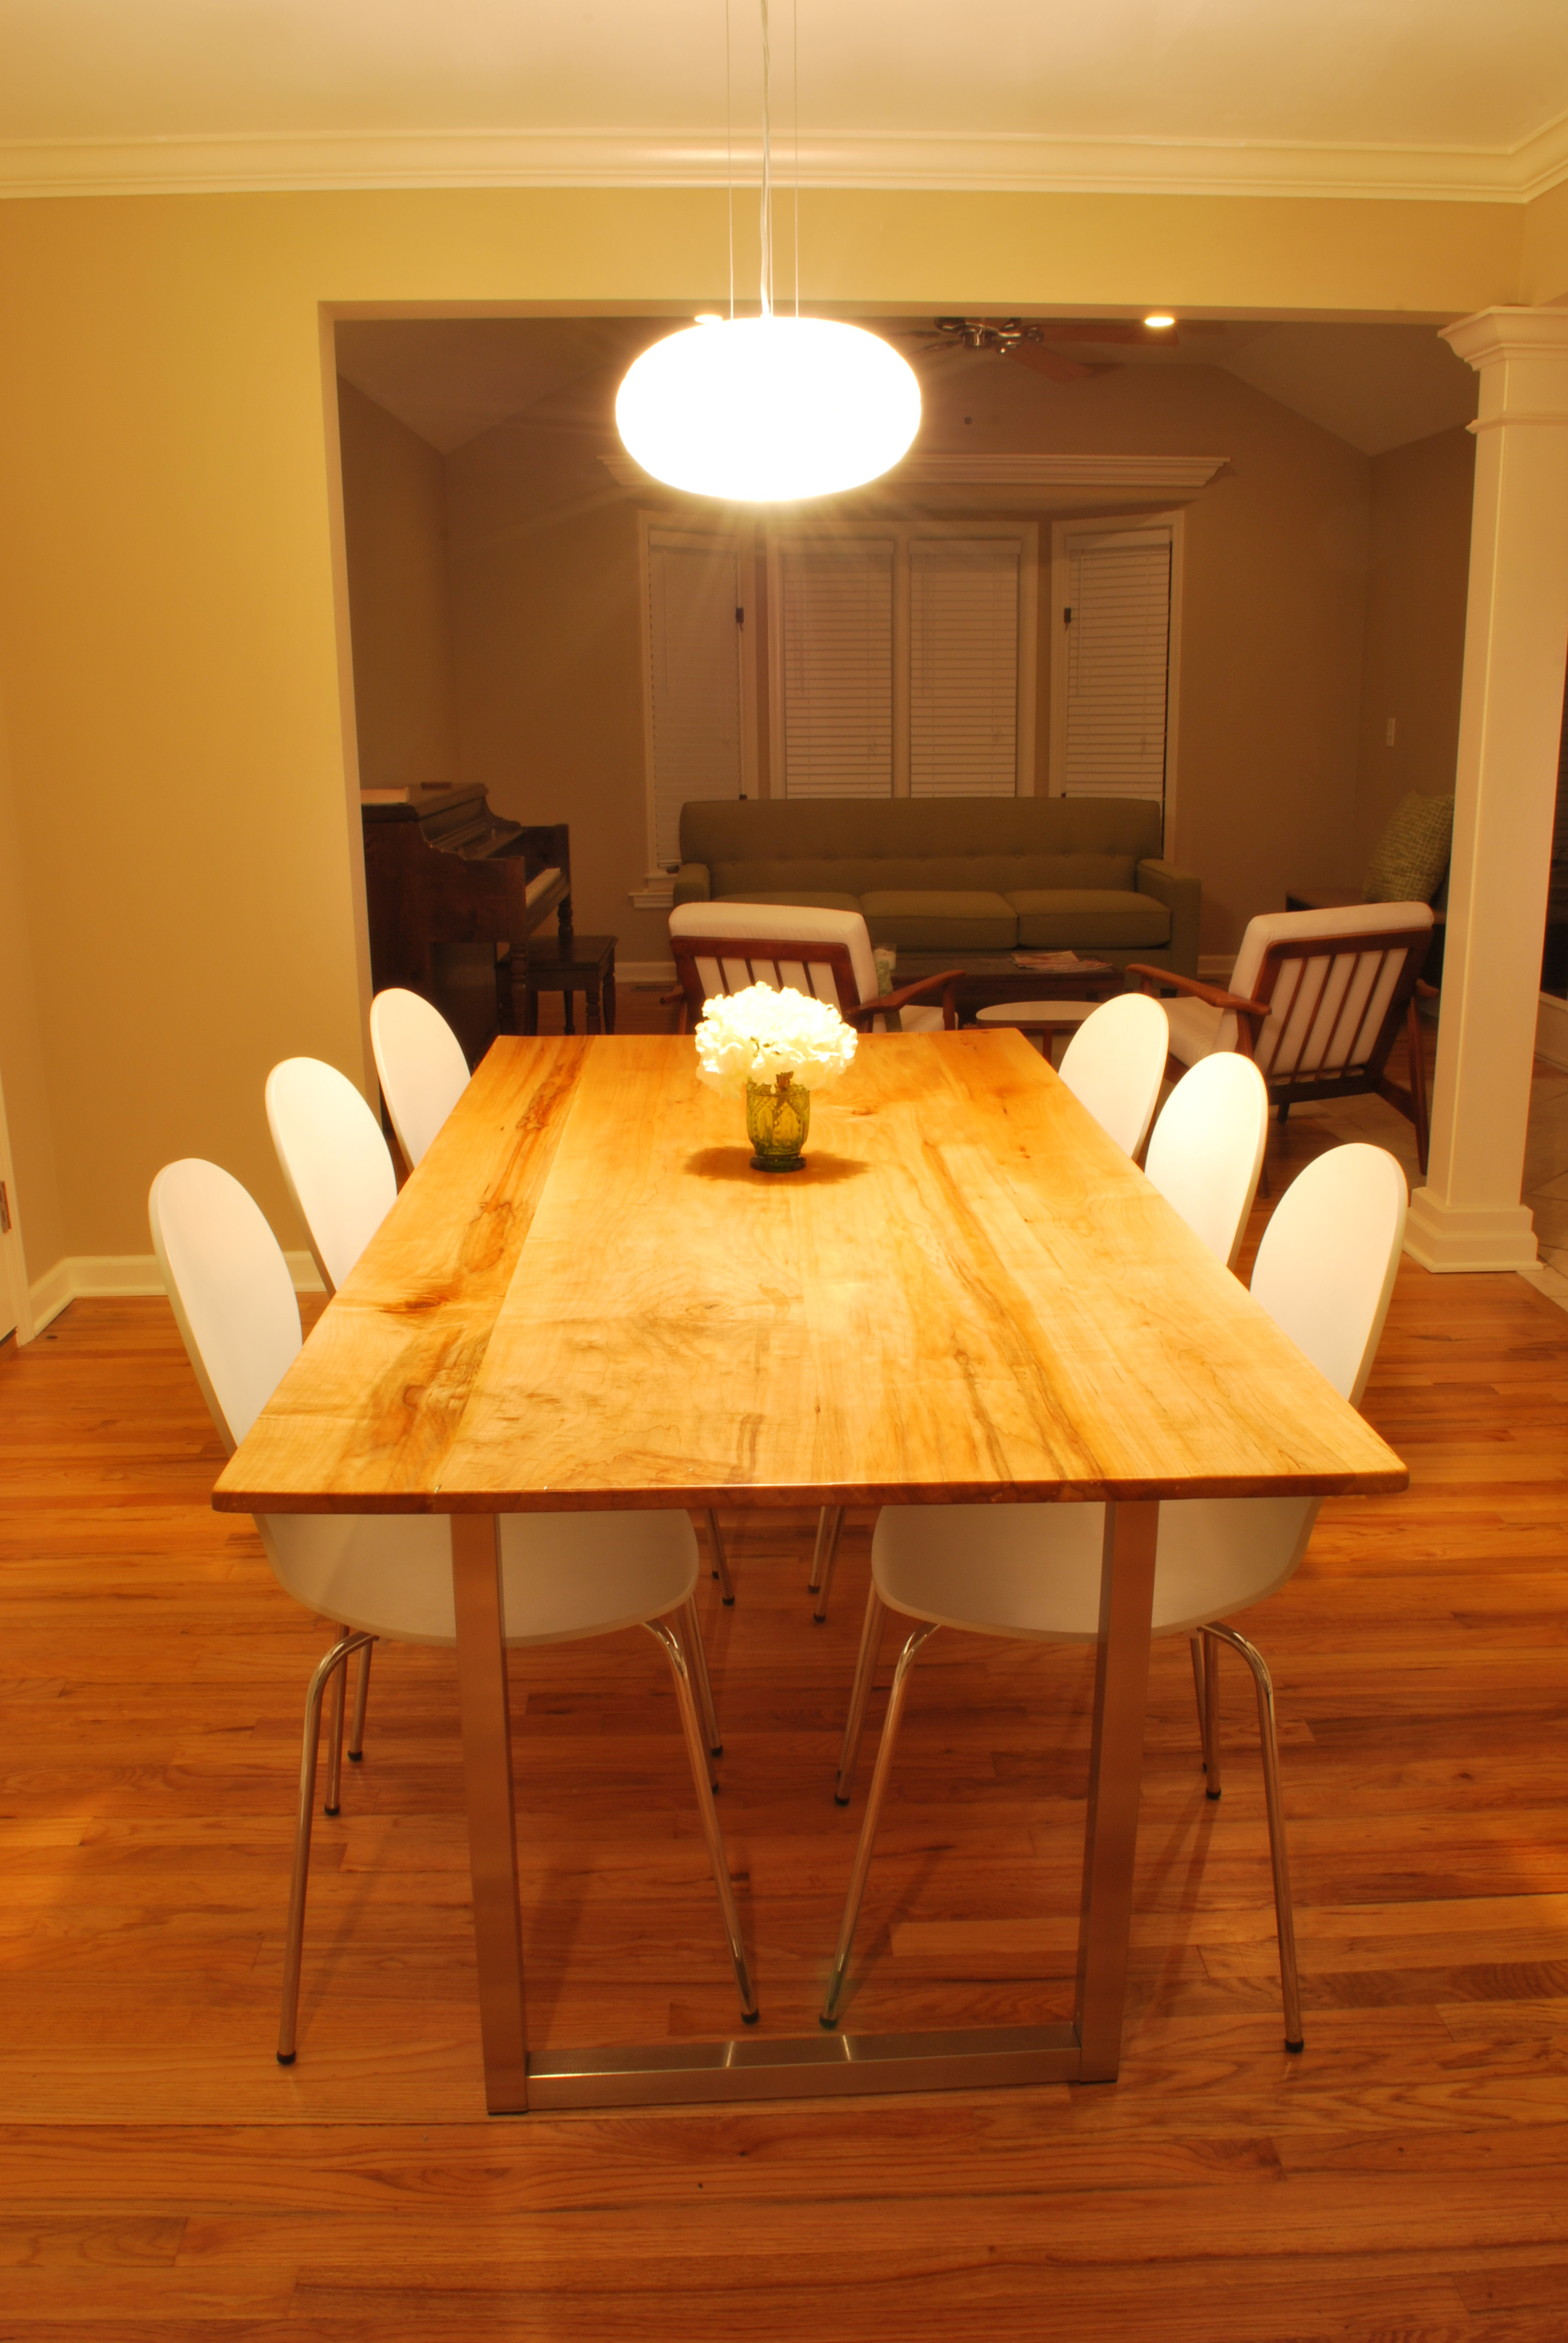 Best ideas about Diy Dining Table . Save or Pin DIY The PERFECT Dining Room Table Now.